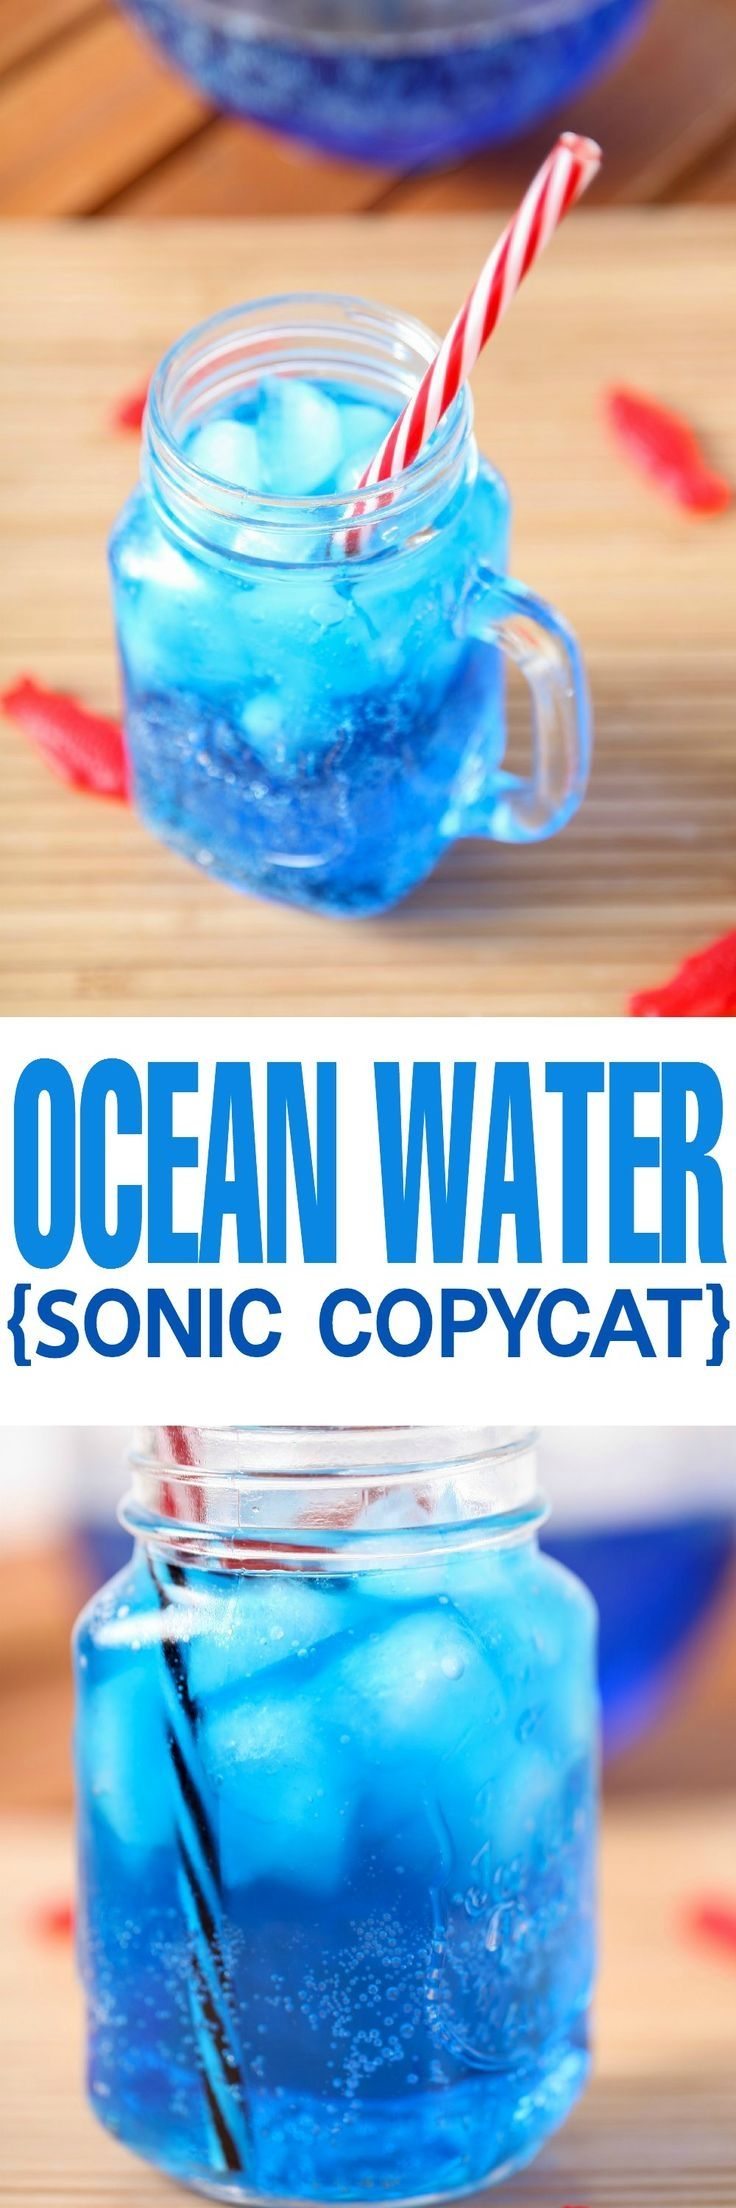 Copycat Sonic Ocean Water Recipe: The most gorgeous and refreshing summer drink around! The perfect non alcoholic drink for picnics or the Fourth of July. #totalbodytransformation